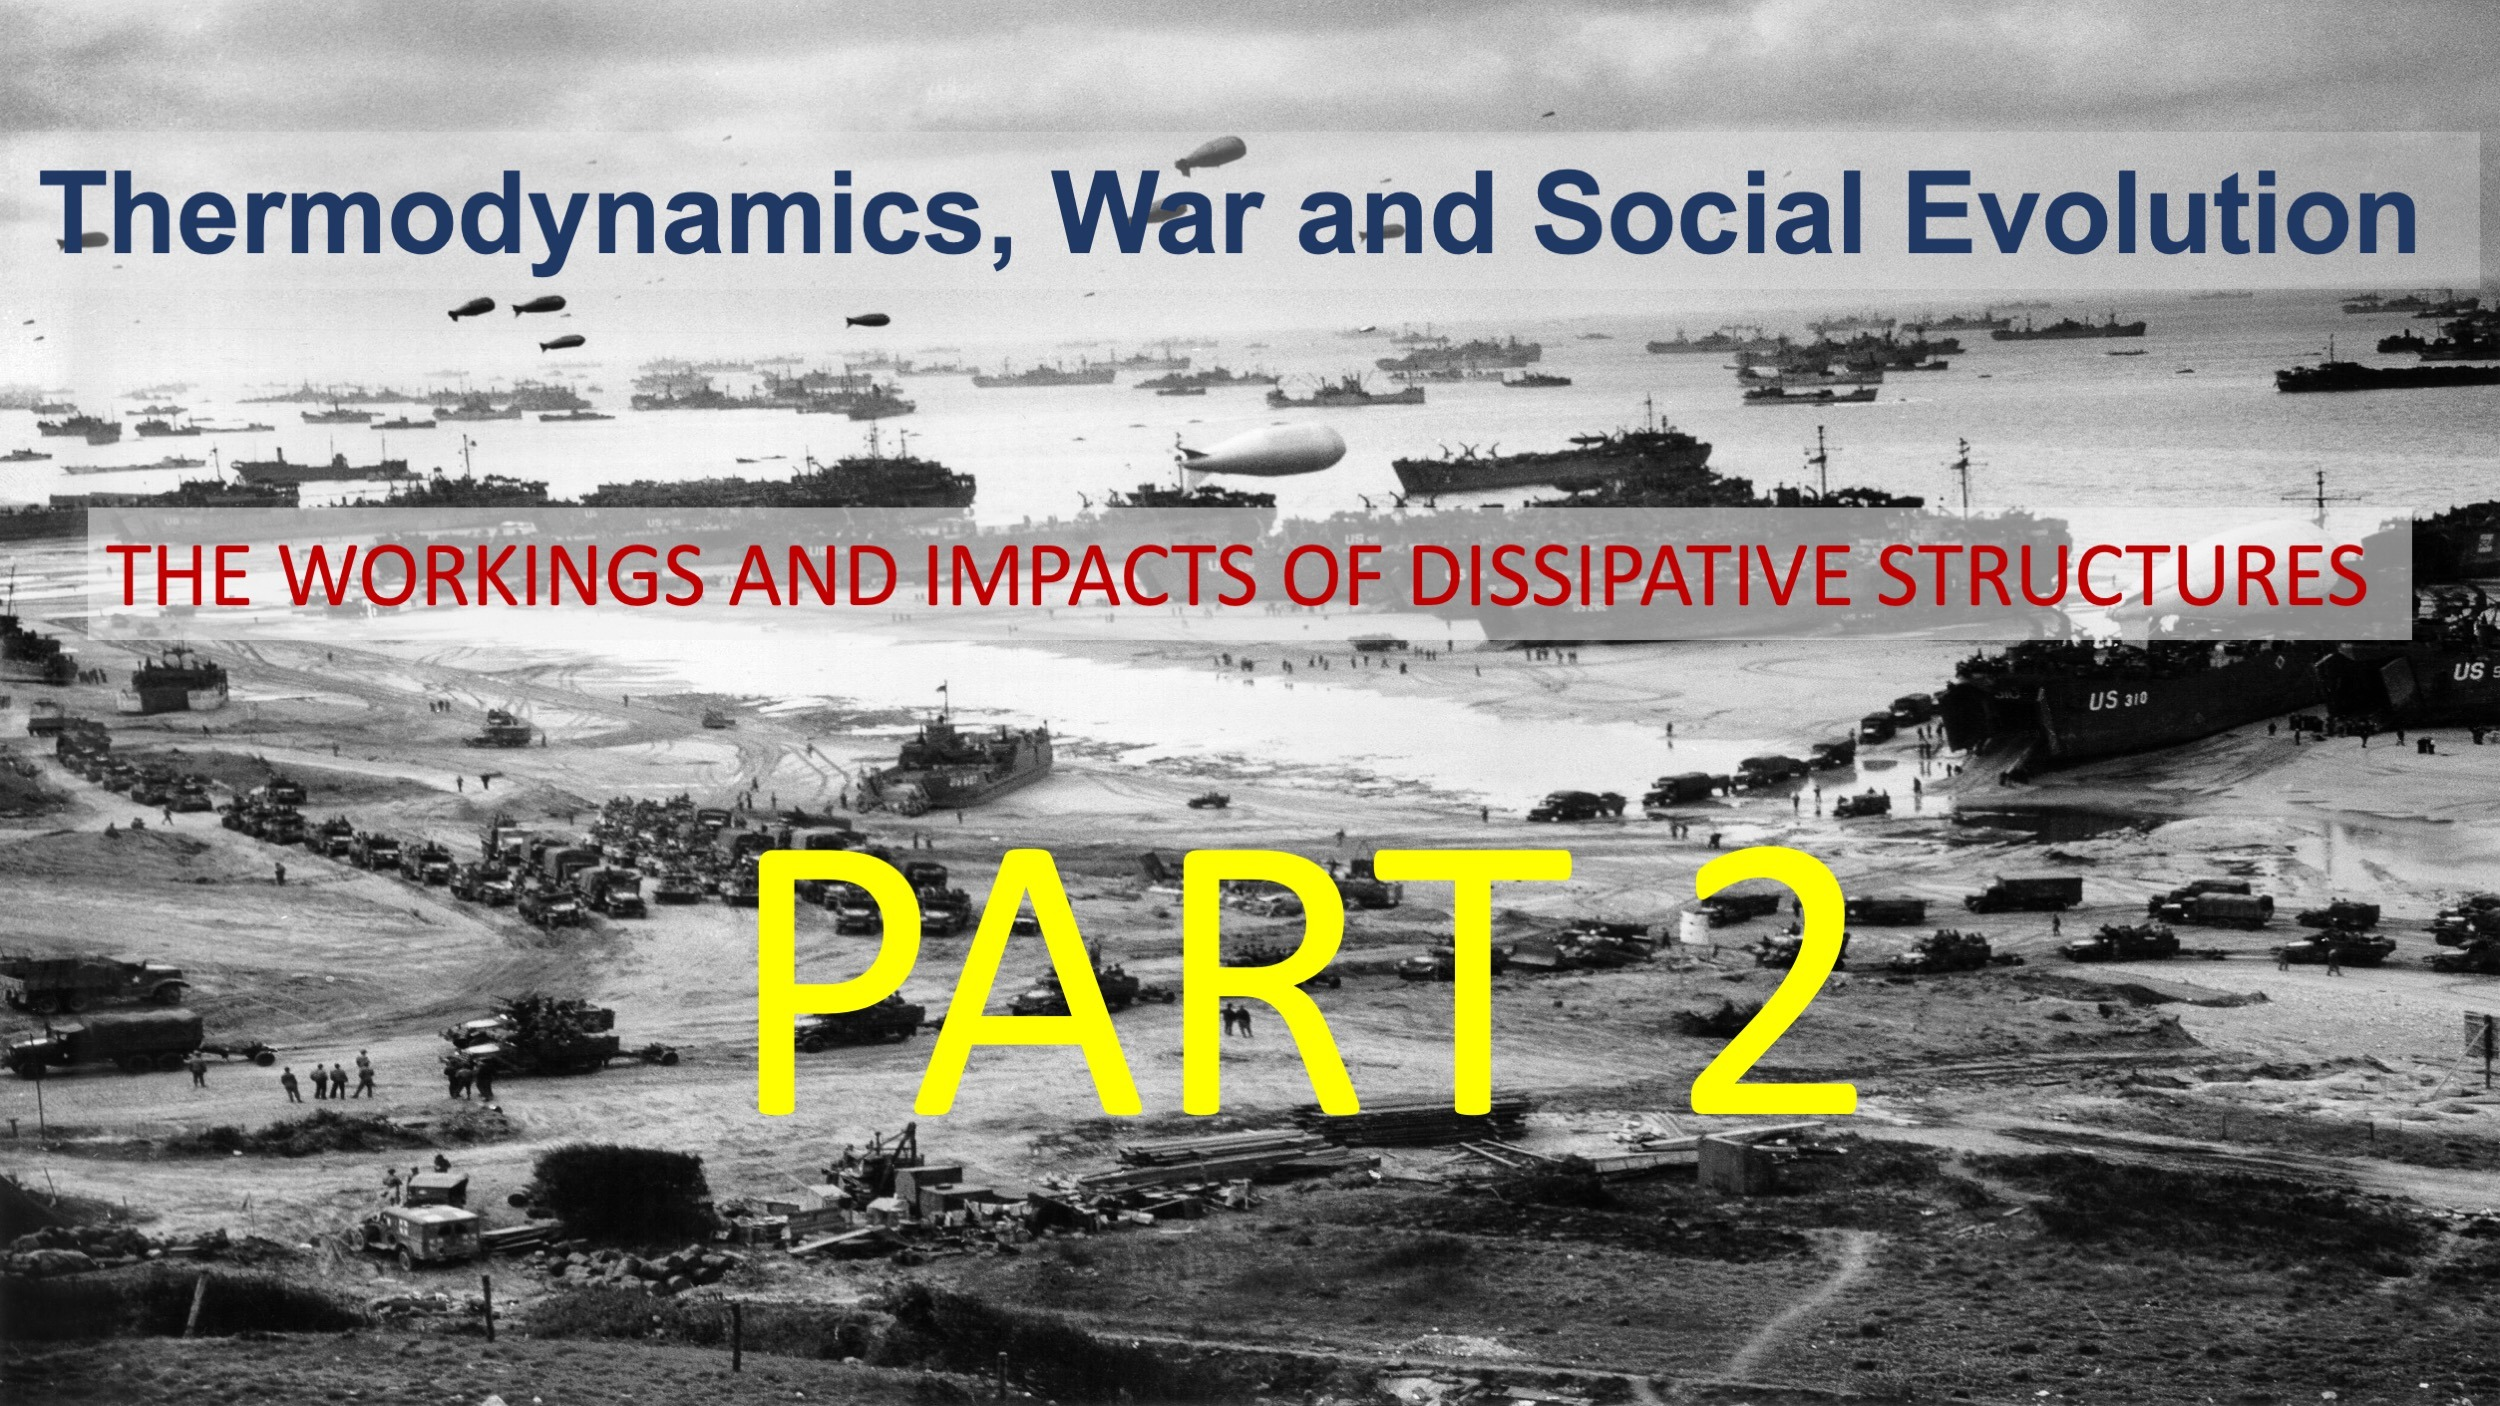 DISSIPATIVE STRUCTURES EXPLAINED: PART 2, PATTERNS IN WAR DYNAMICS